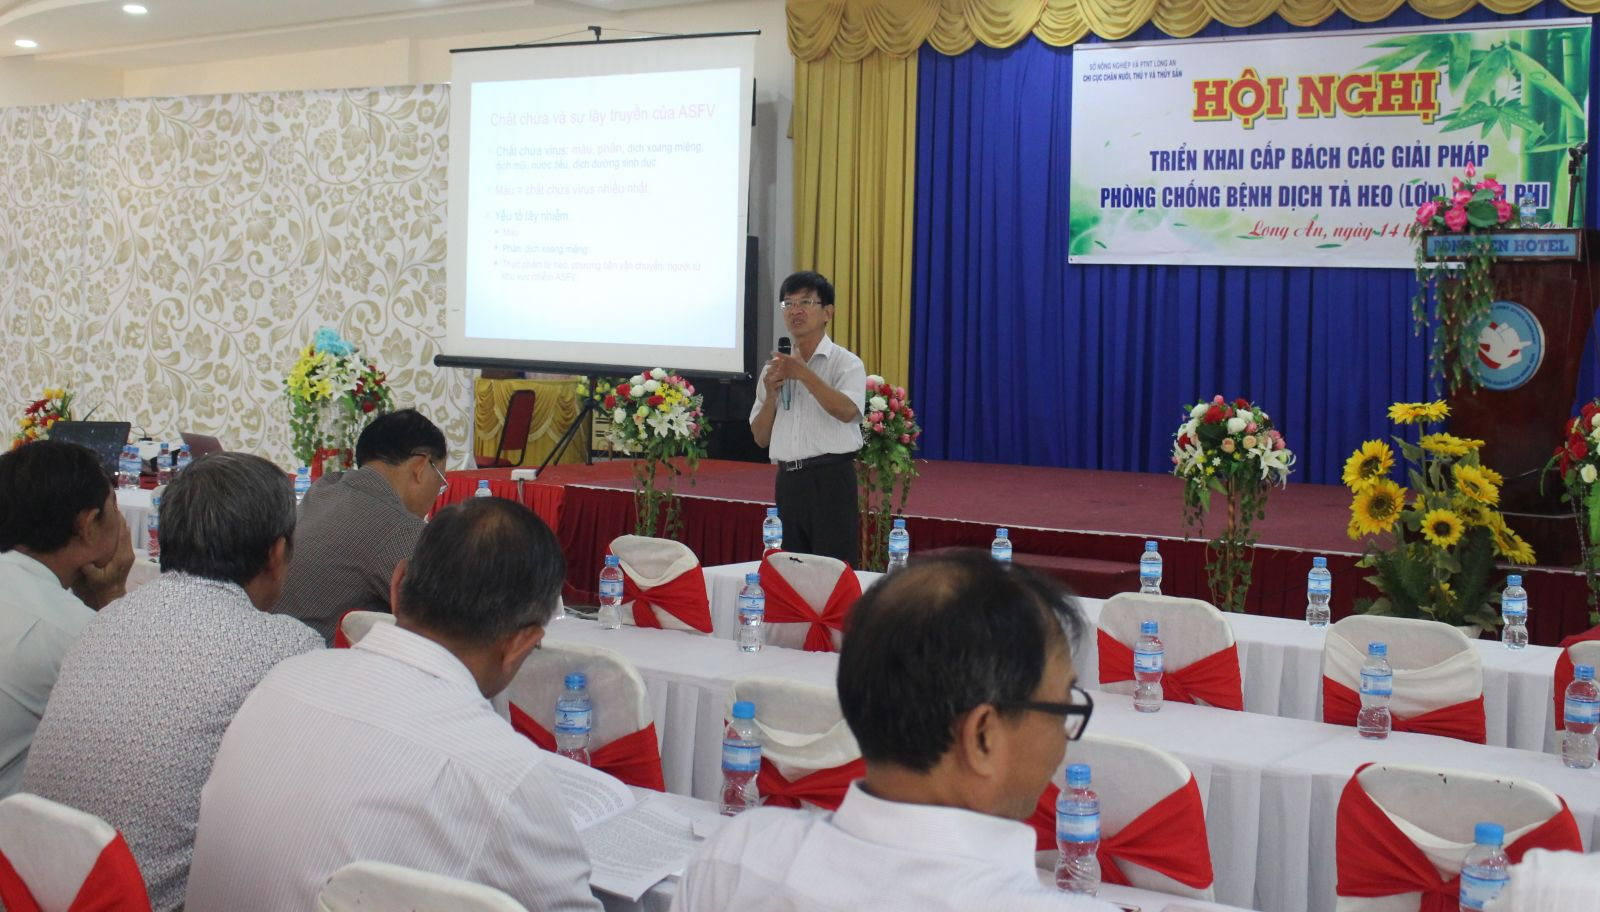 Prof., Ph.D - Nguyen Ngoc Hai presented the situation of ASF causing great impact on the livestock sector